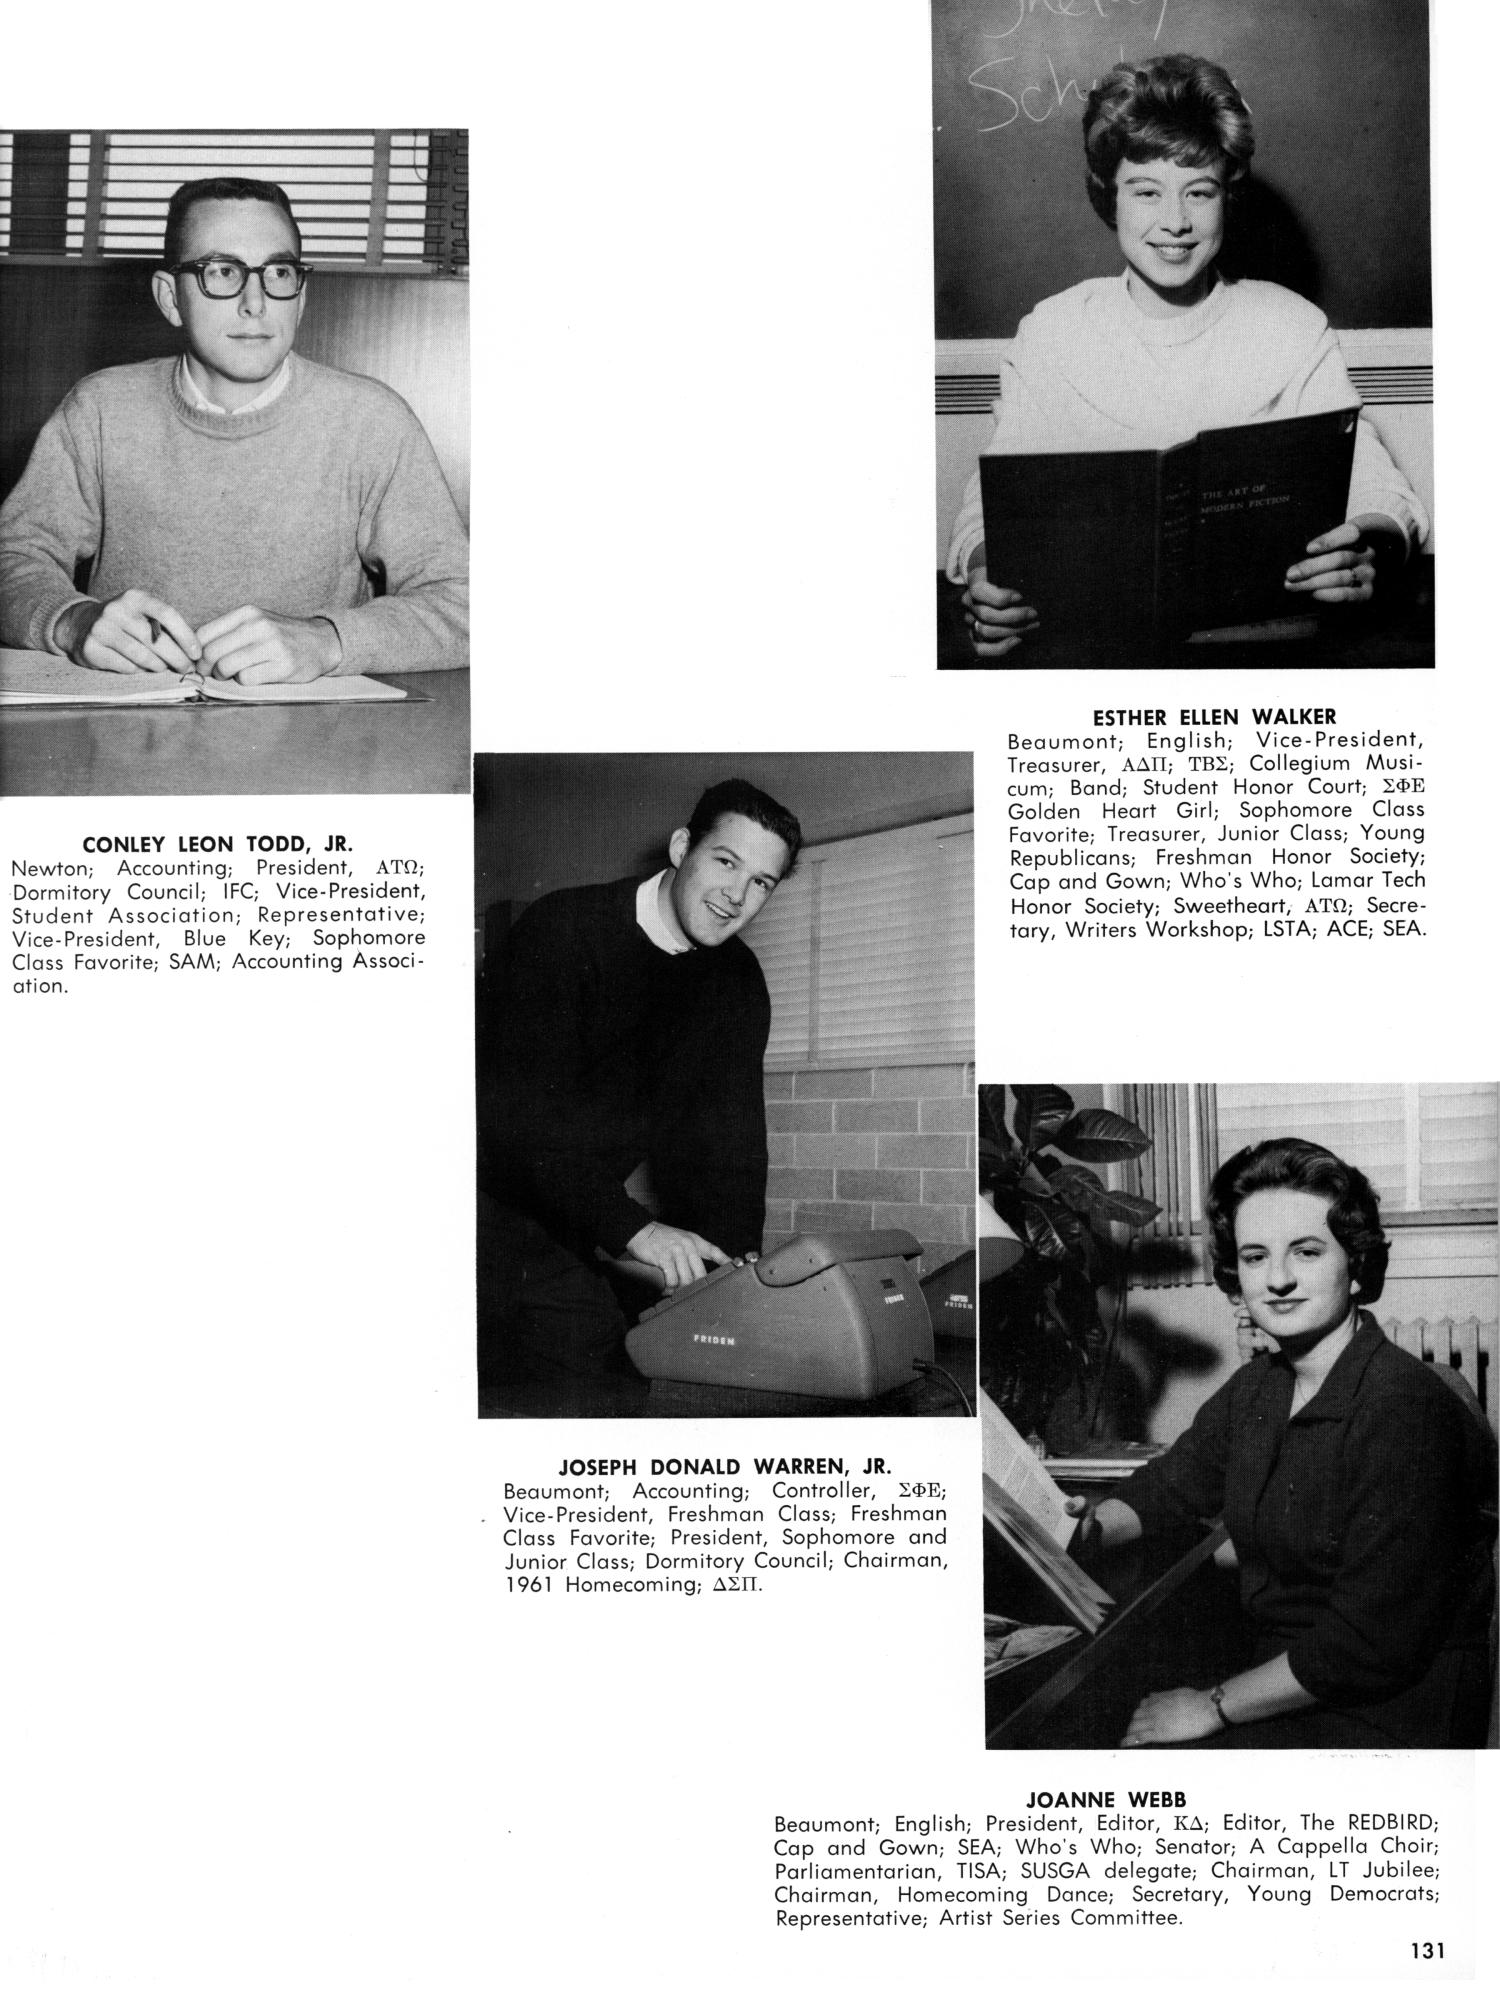 The Cardinal, Yearbook of Lamar State College of Technology, 1962 ...